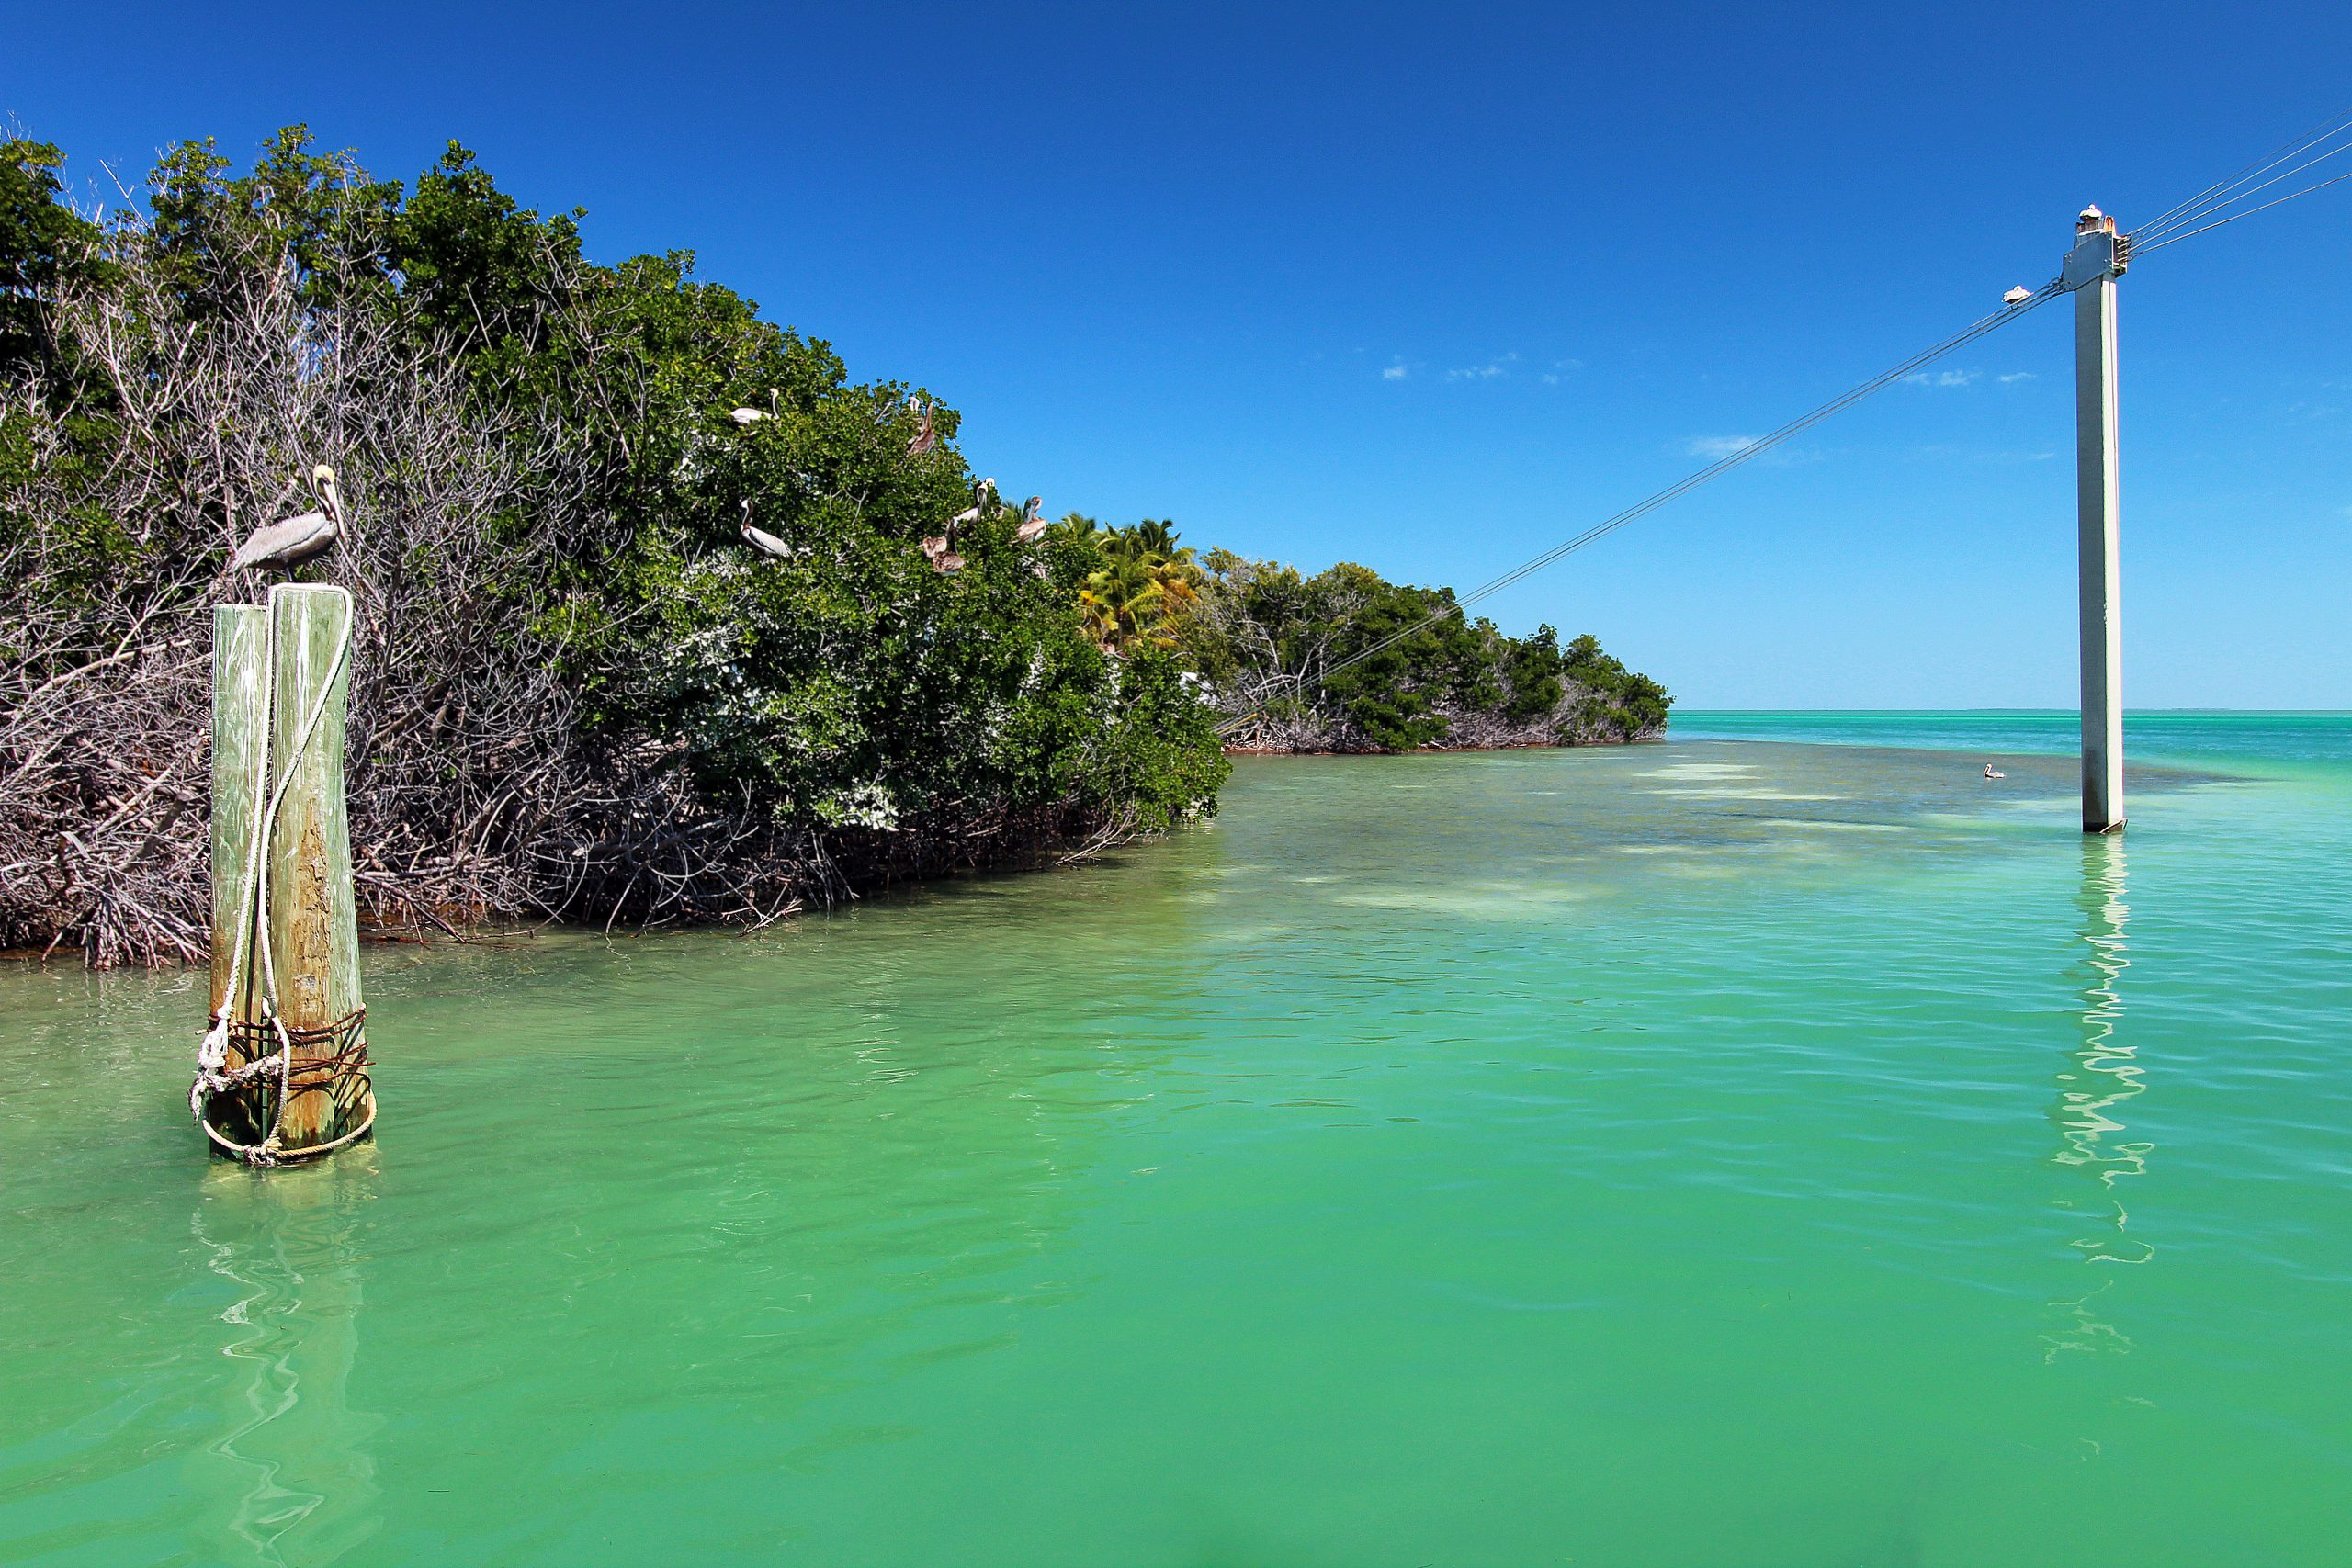 The Best Things To Do In Islamorada